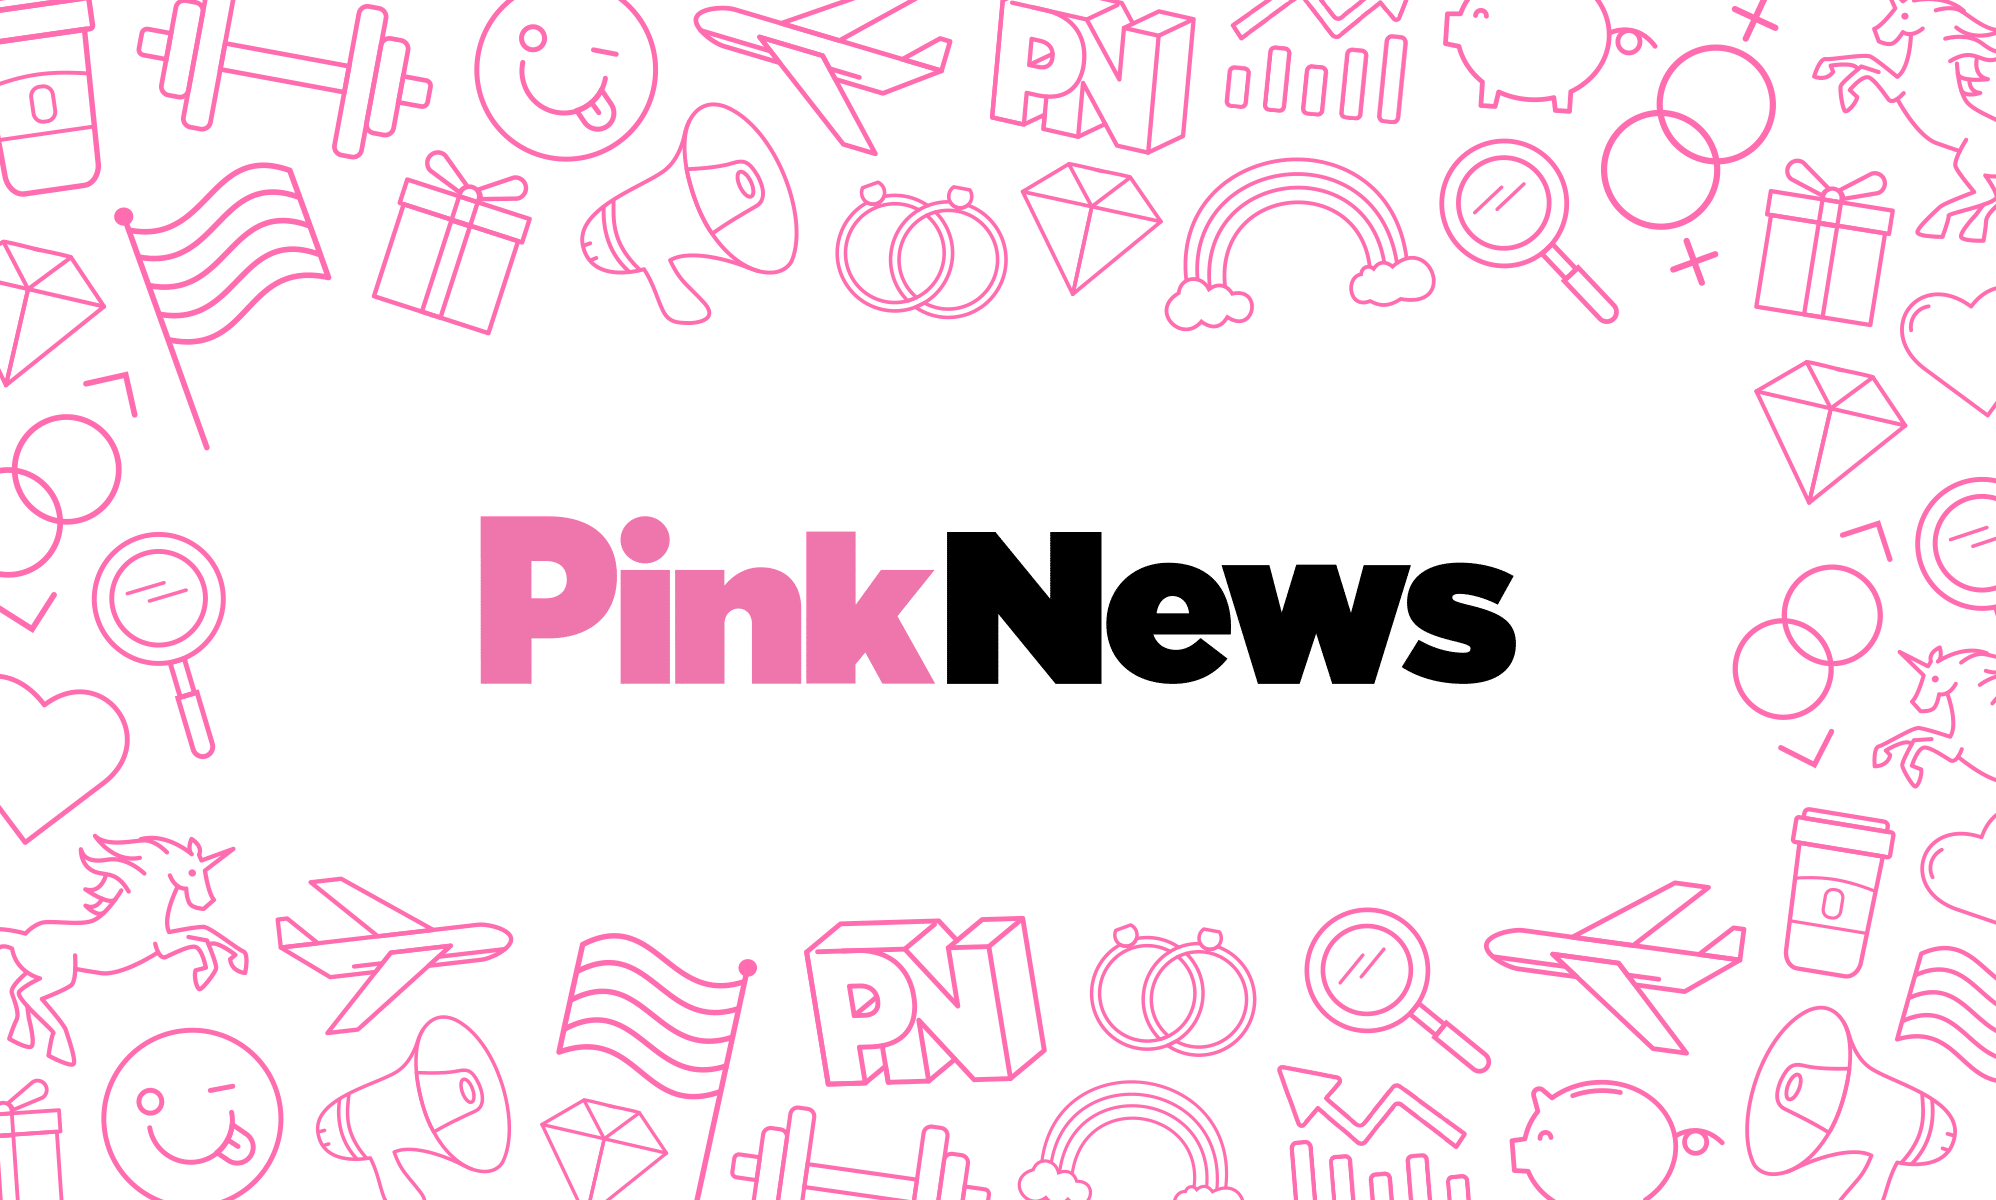 Pictures: Ed Miliband, Victoria Derbyshire and more at PinkNews Awards 2015